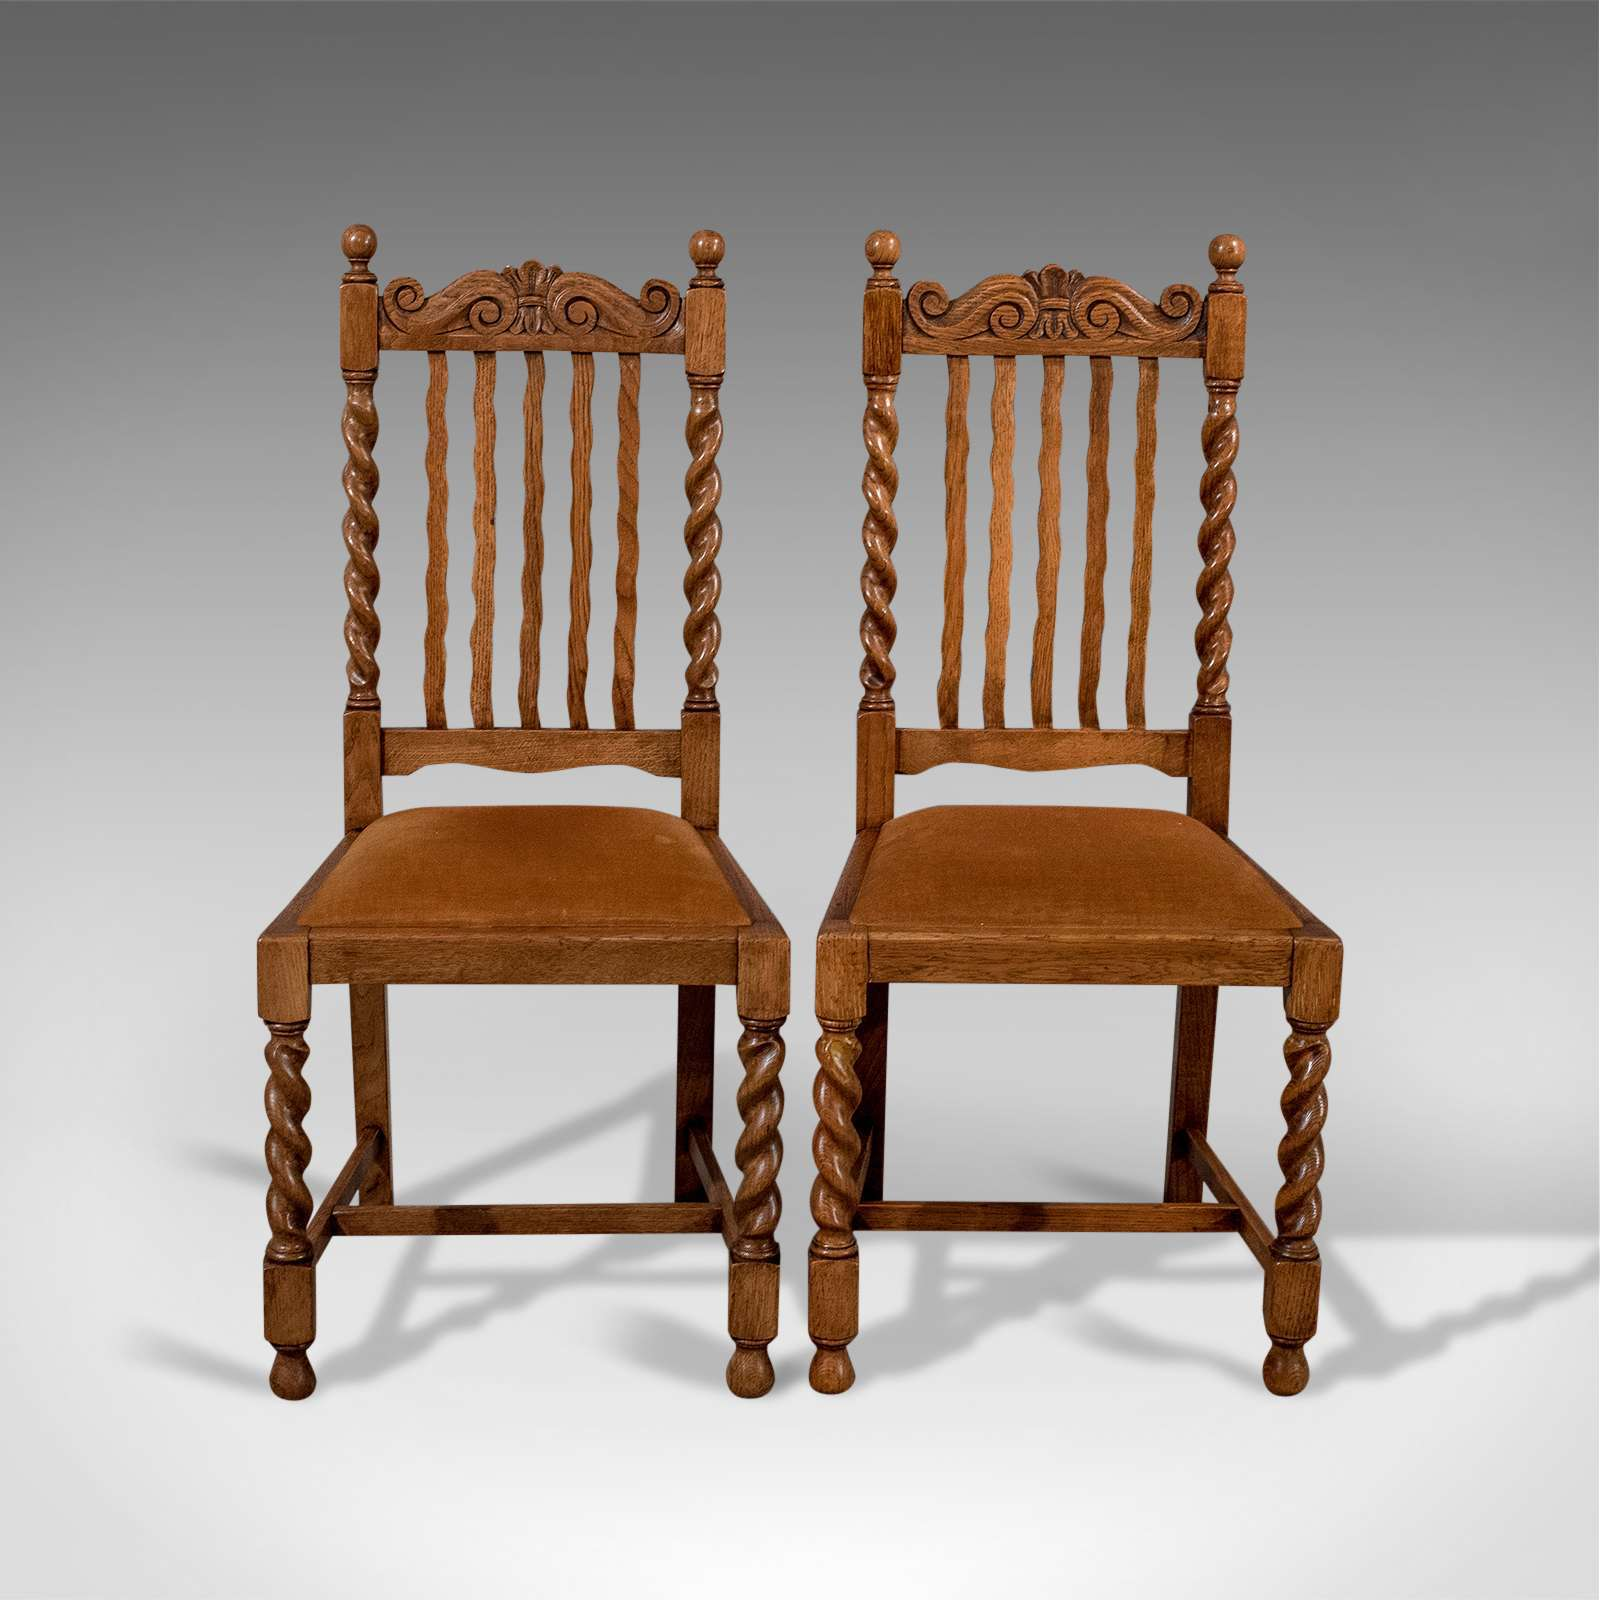 Antique Pair of Chairs, English, Oak, Dining, Side, Hall, Edwardian Circa 1910